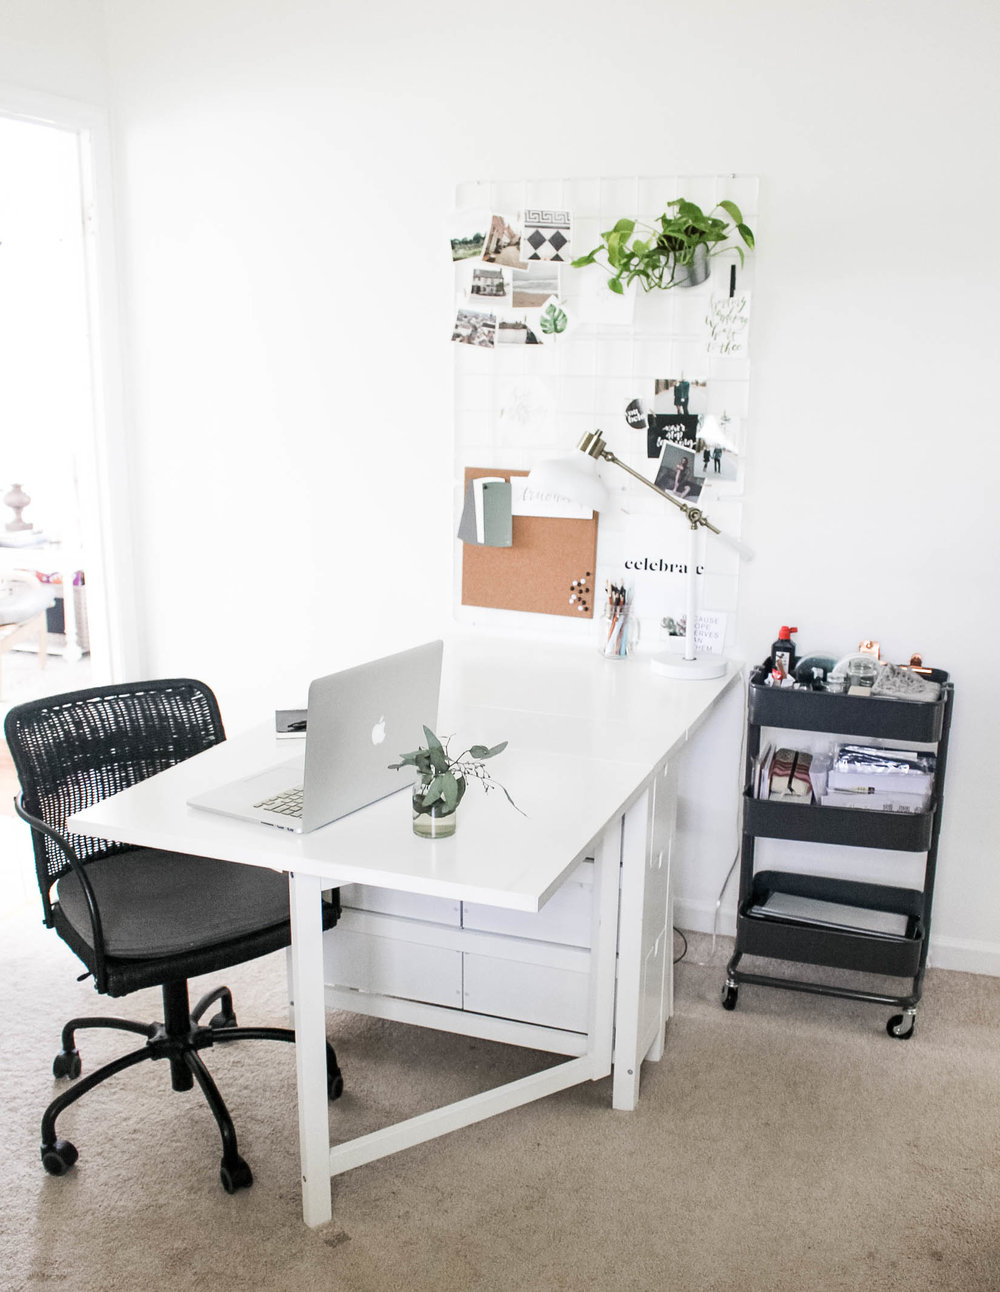 Norden Ikea Table as Desk - Small Work Space - True North Paper Co.